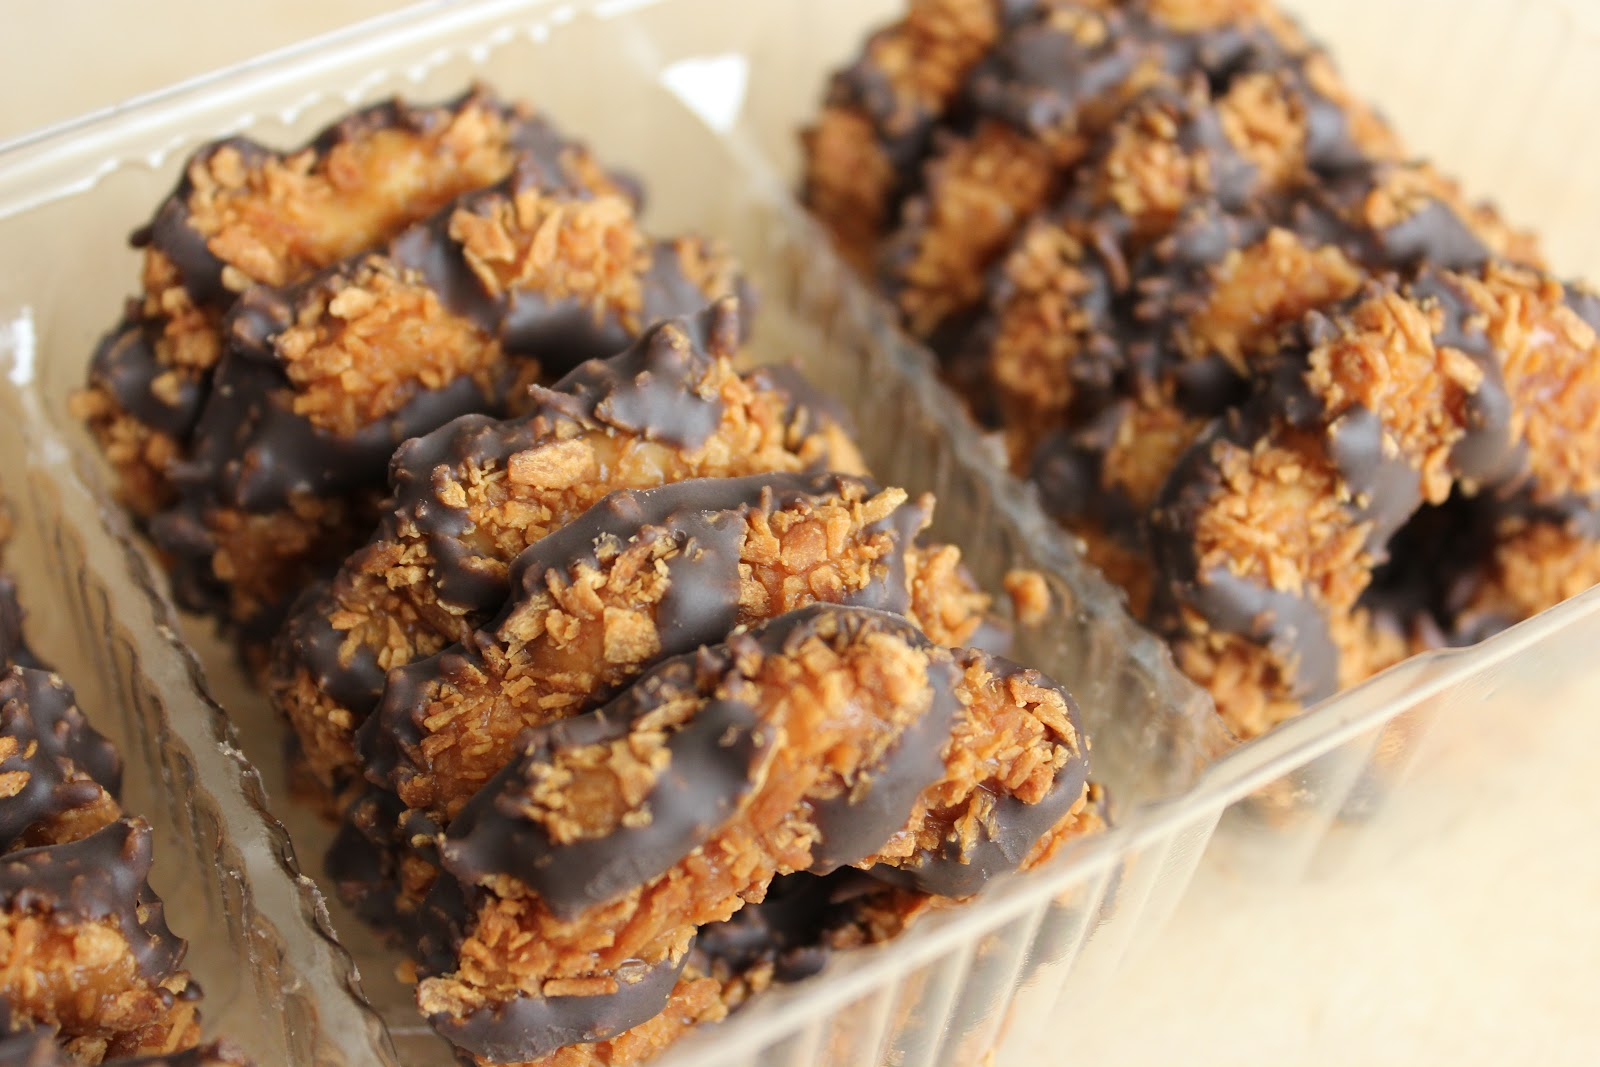 Girl Scout Cookies - Serving Seconds